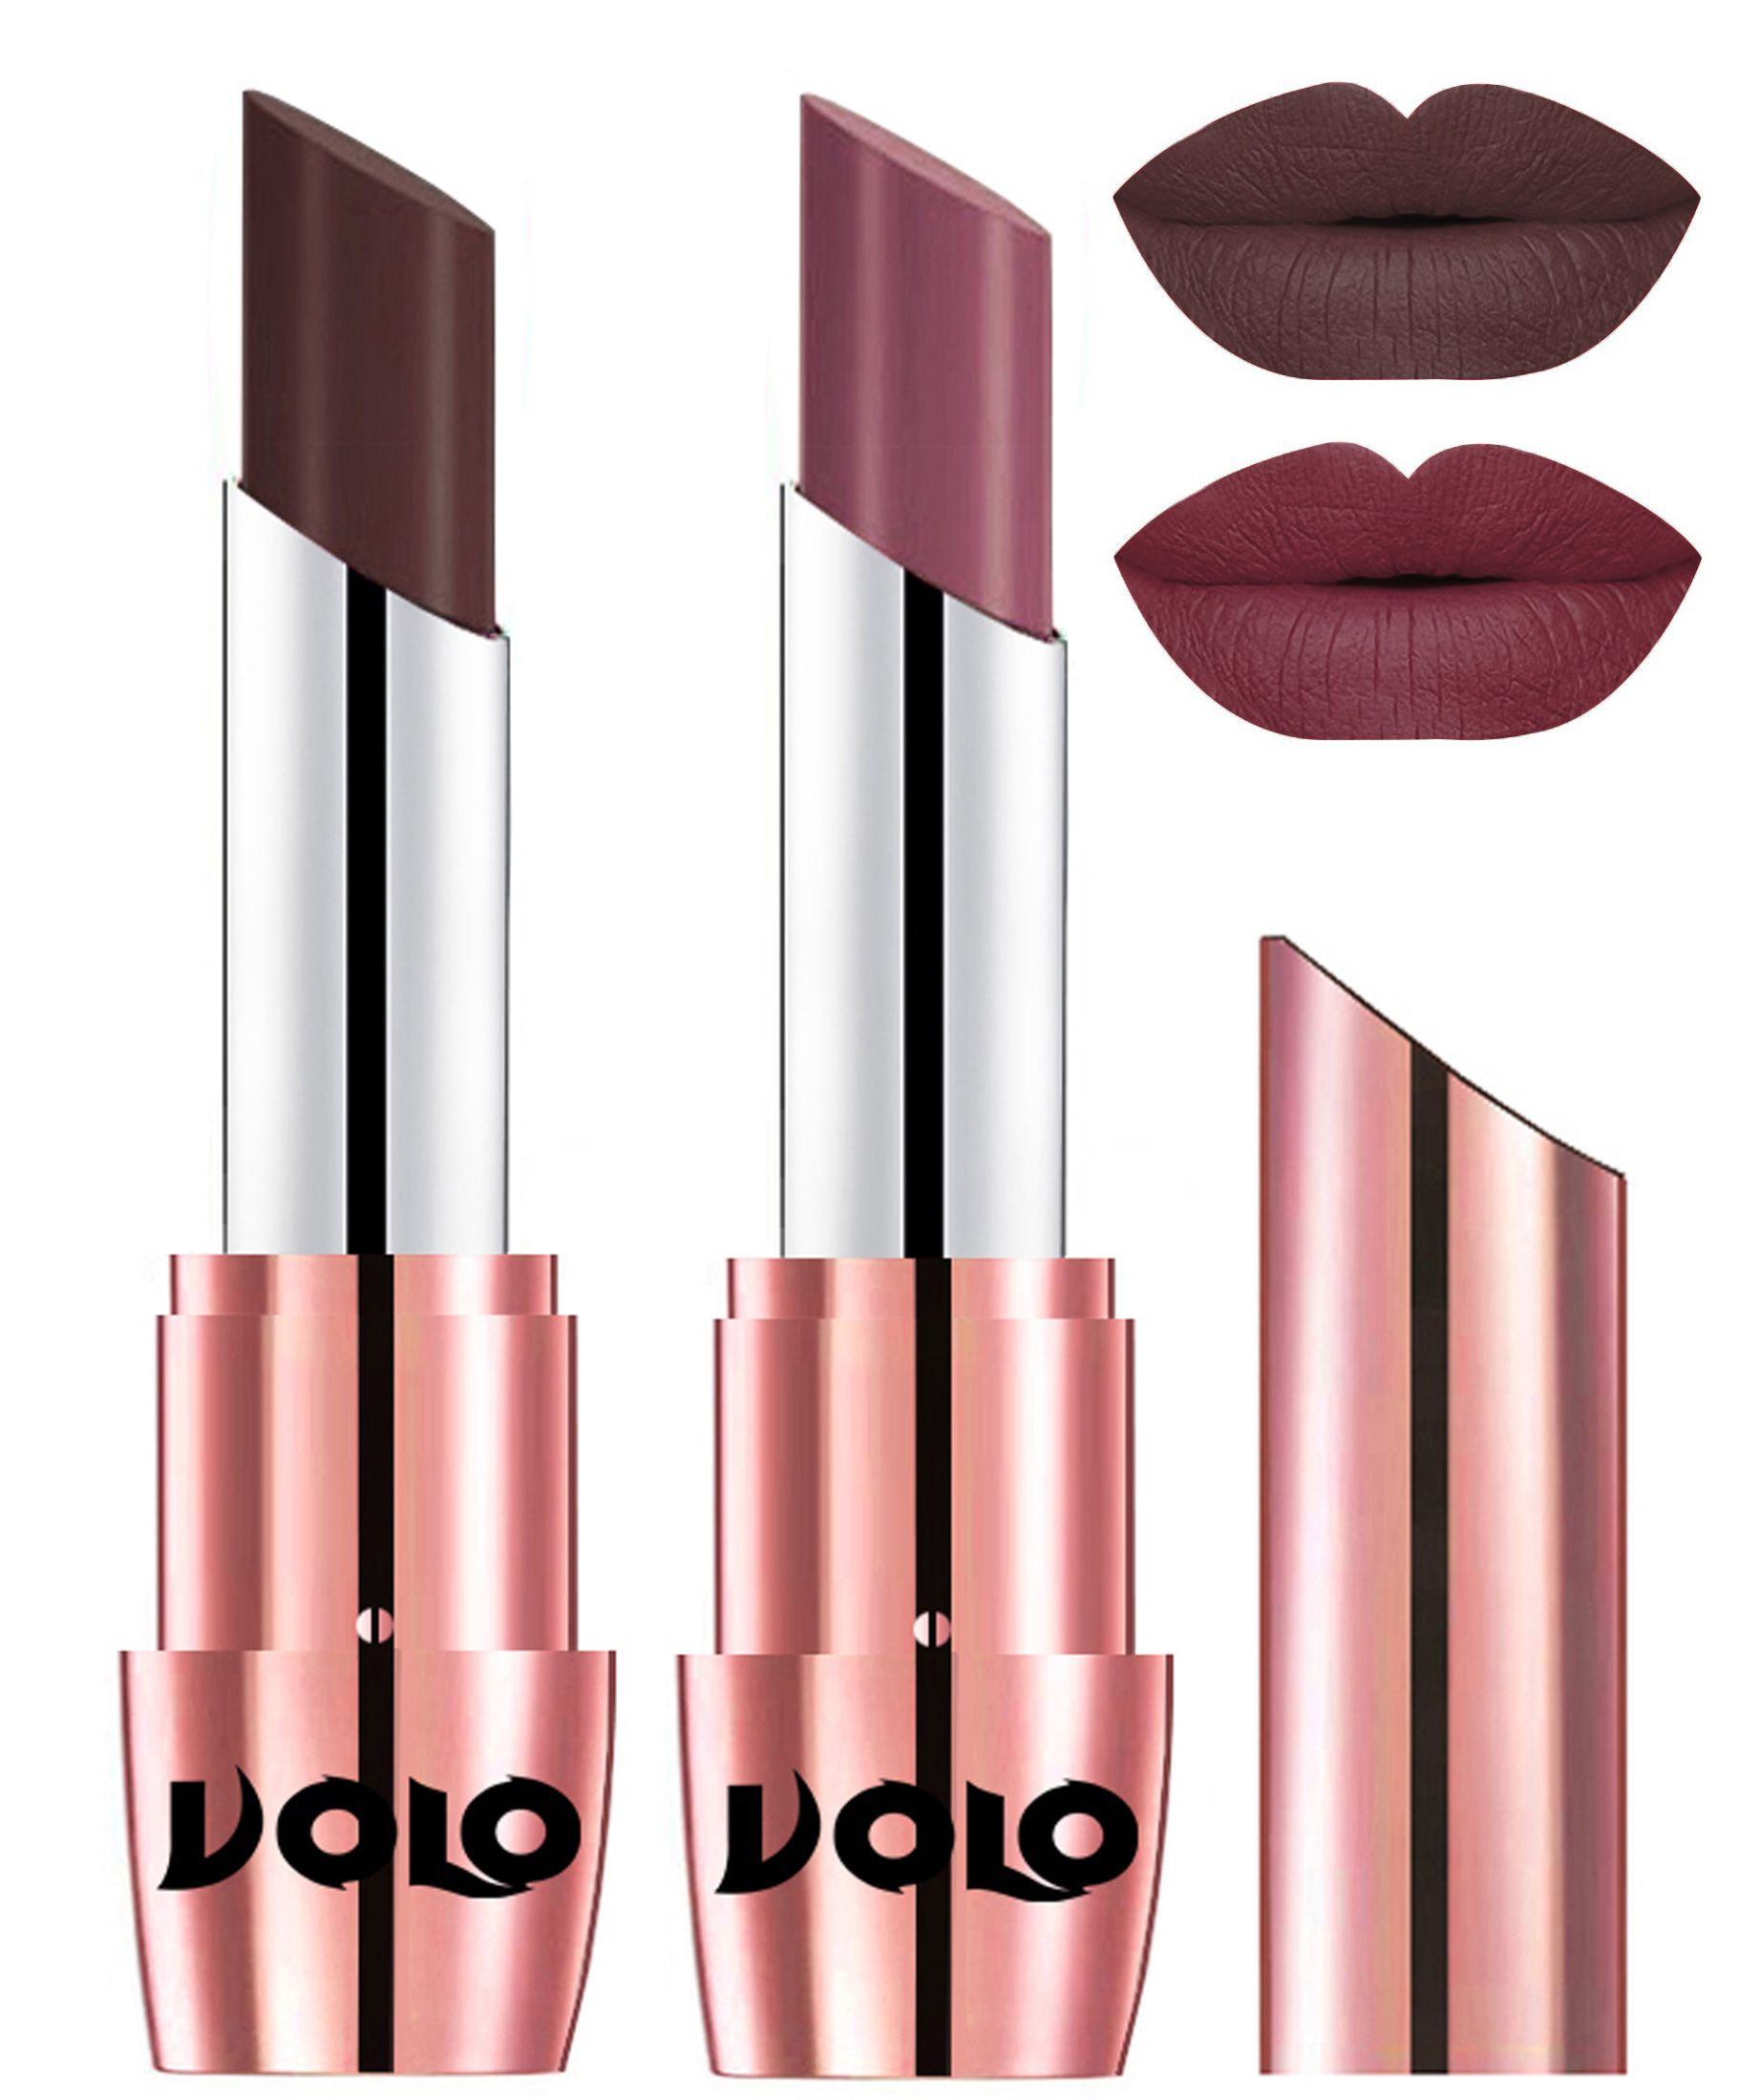 VOLO Perfect Creamy with Matte Lipstick Chocolate Plum Pack of 2 7 g